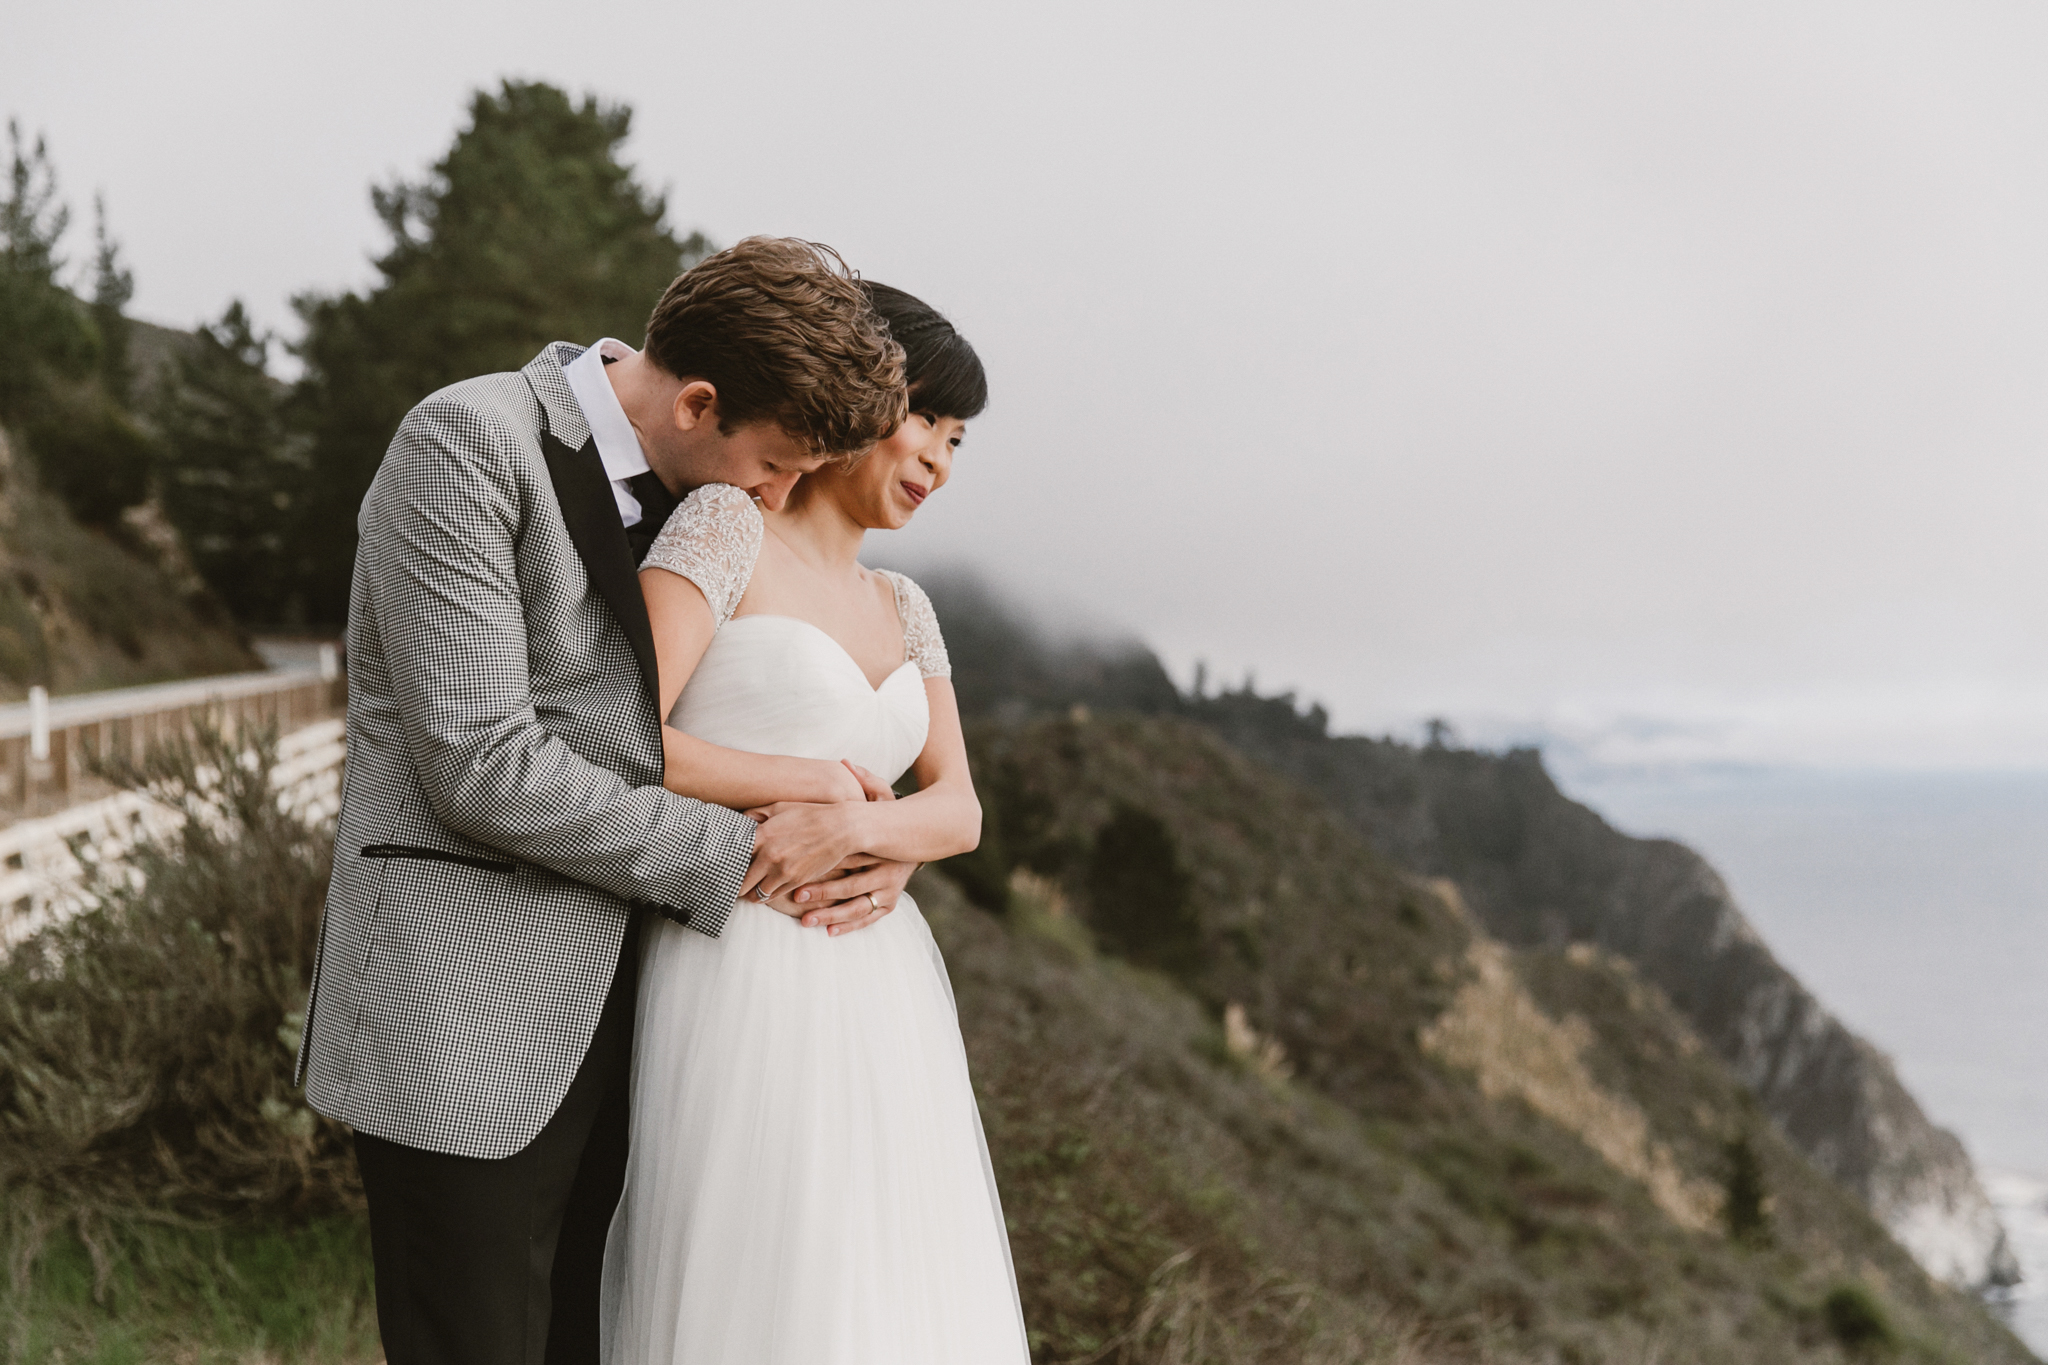 BIG SUR BAKERY WEDDING -10138